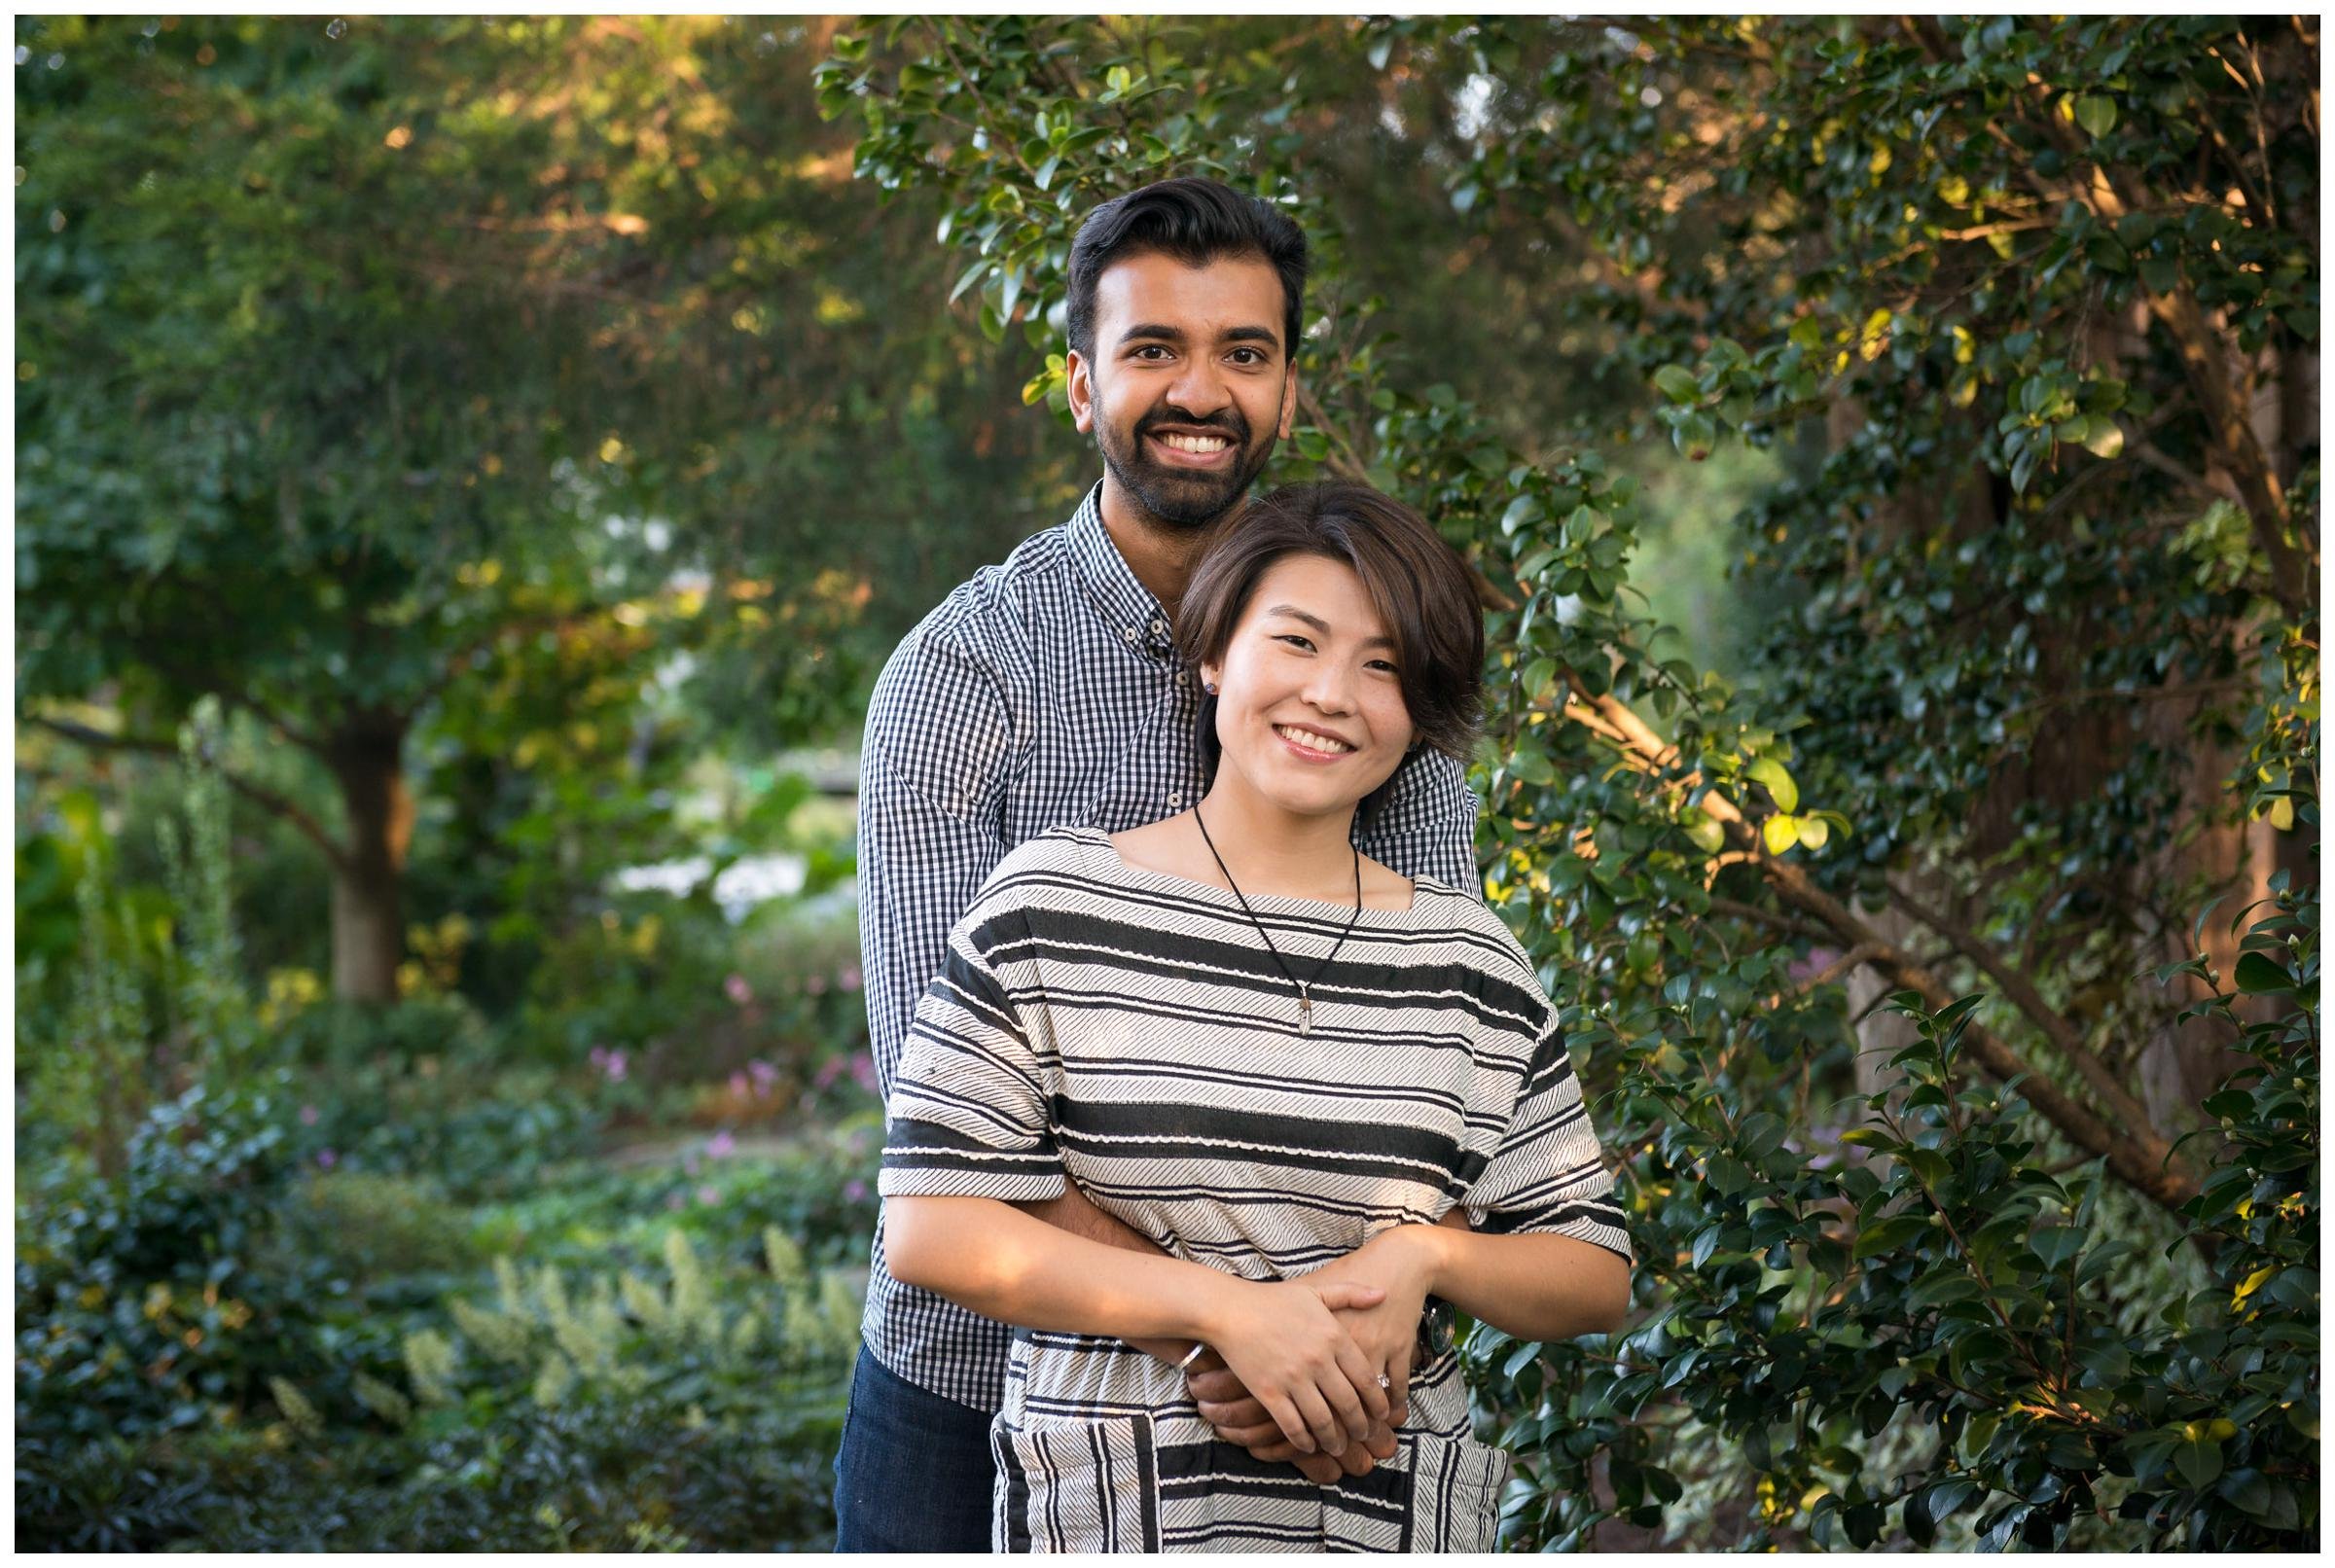 engagement session at park in Northern Virginia